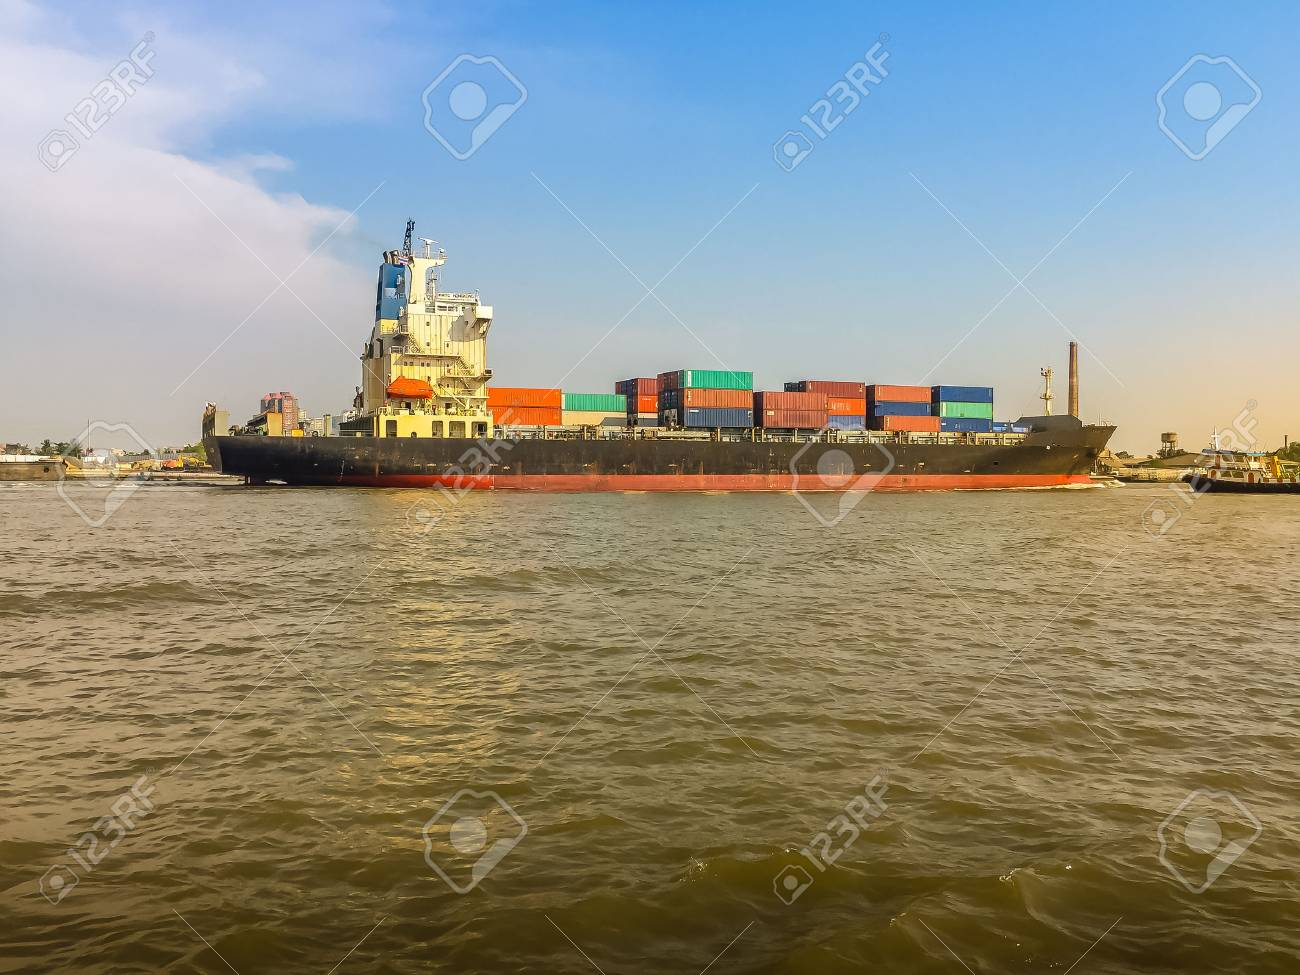 Massive container ship for import export and business logistic